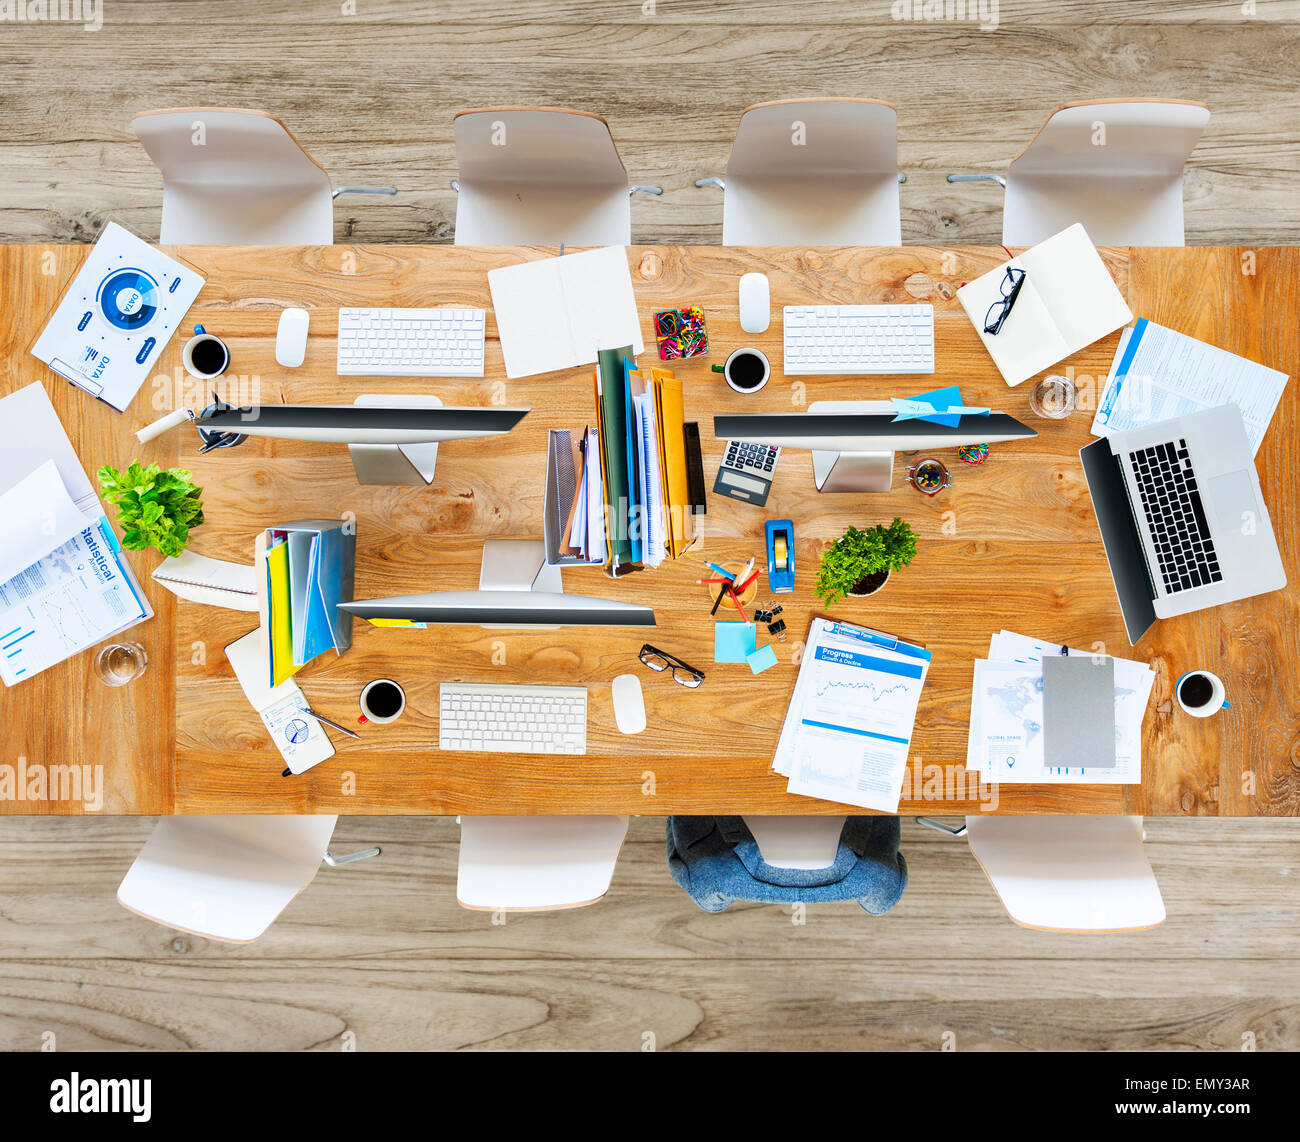 Messy Office with No People - Stock Image